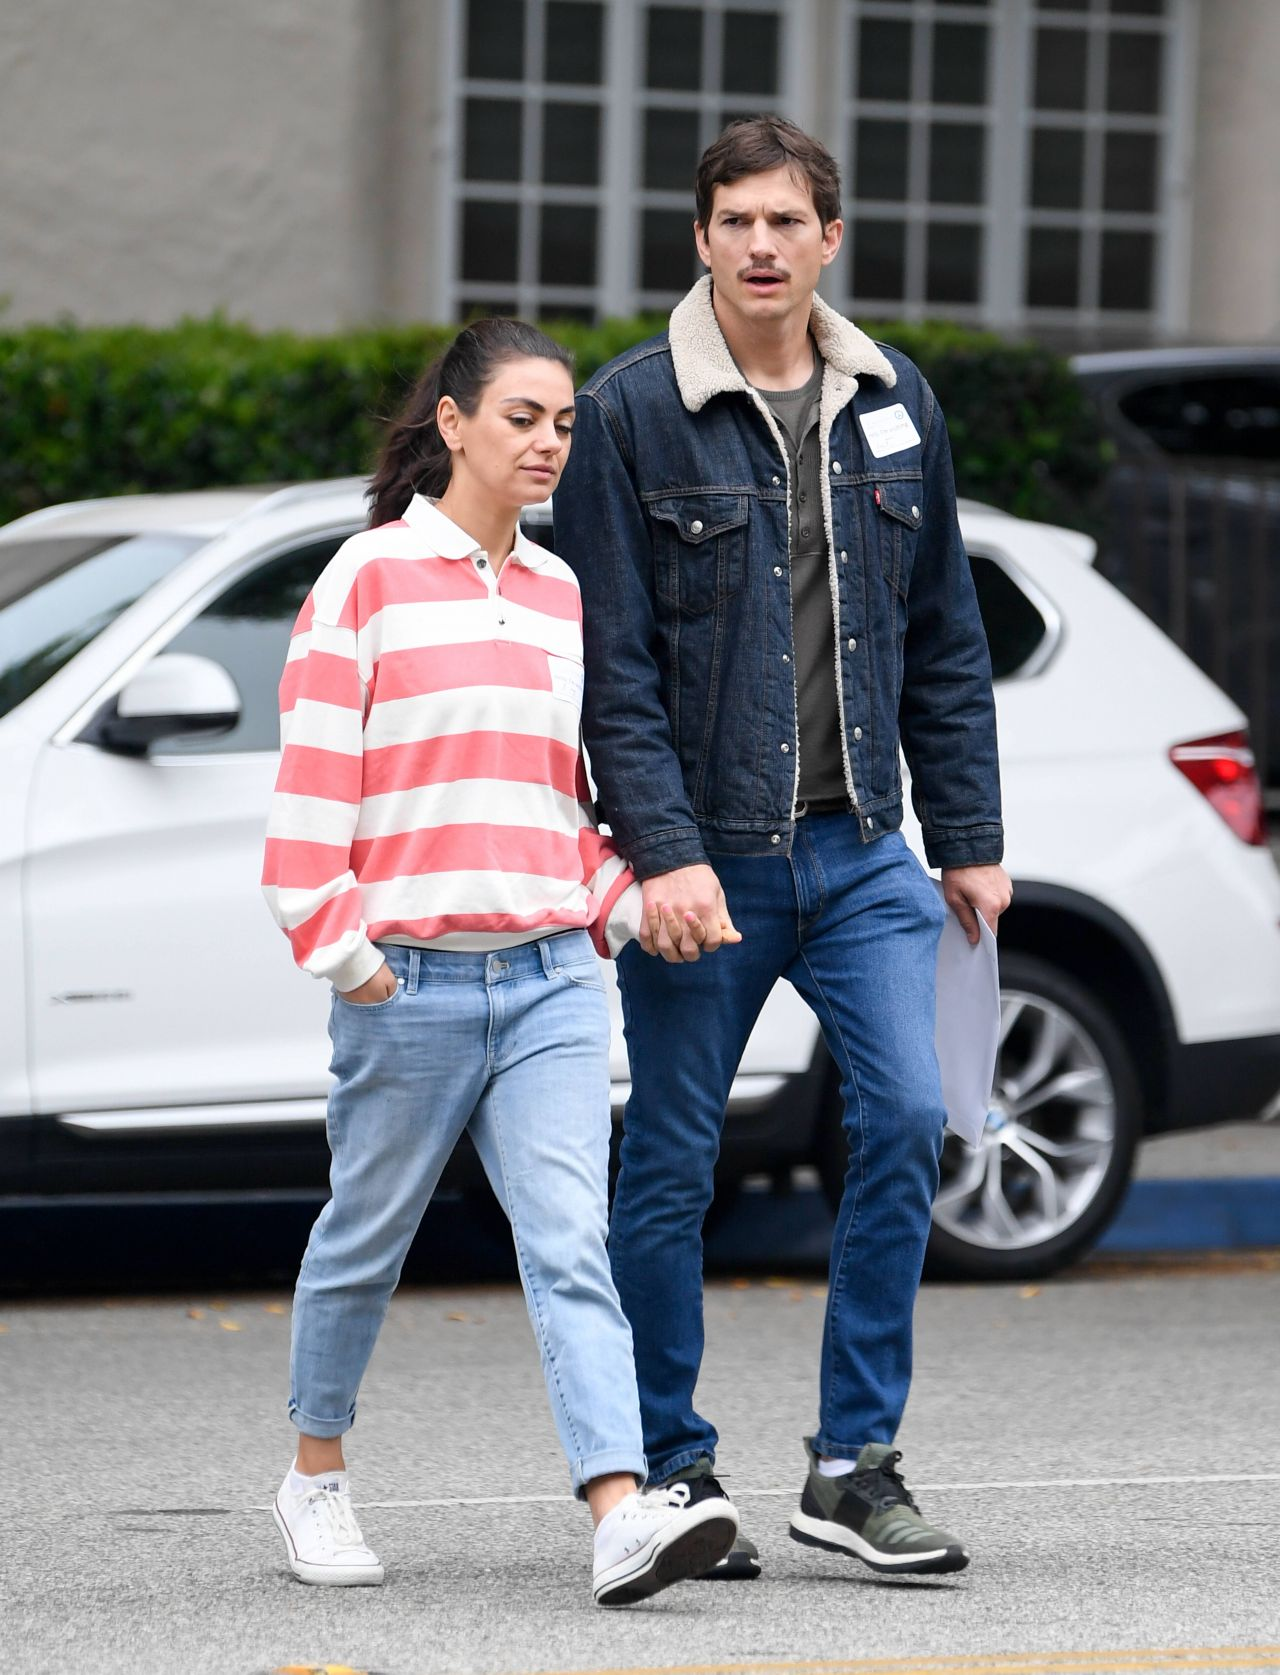 Mila Kunis Wasting Away Amid Ashton Kutcher Divorce